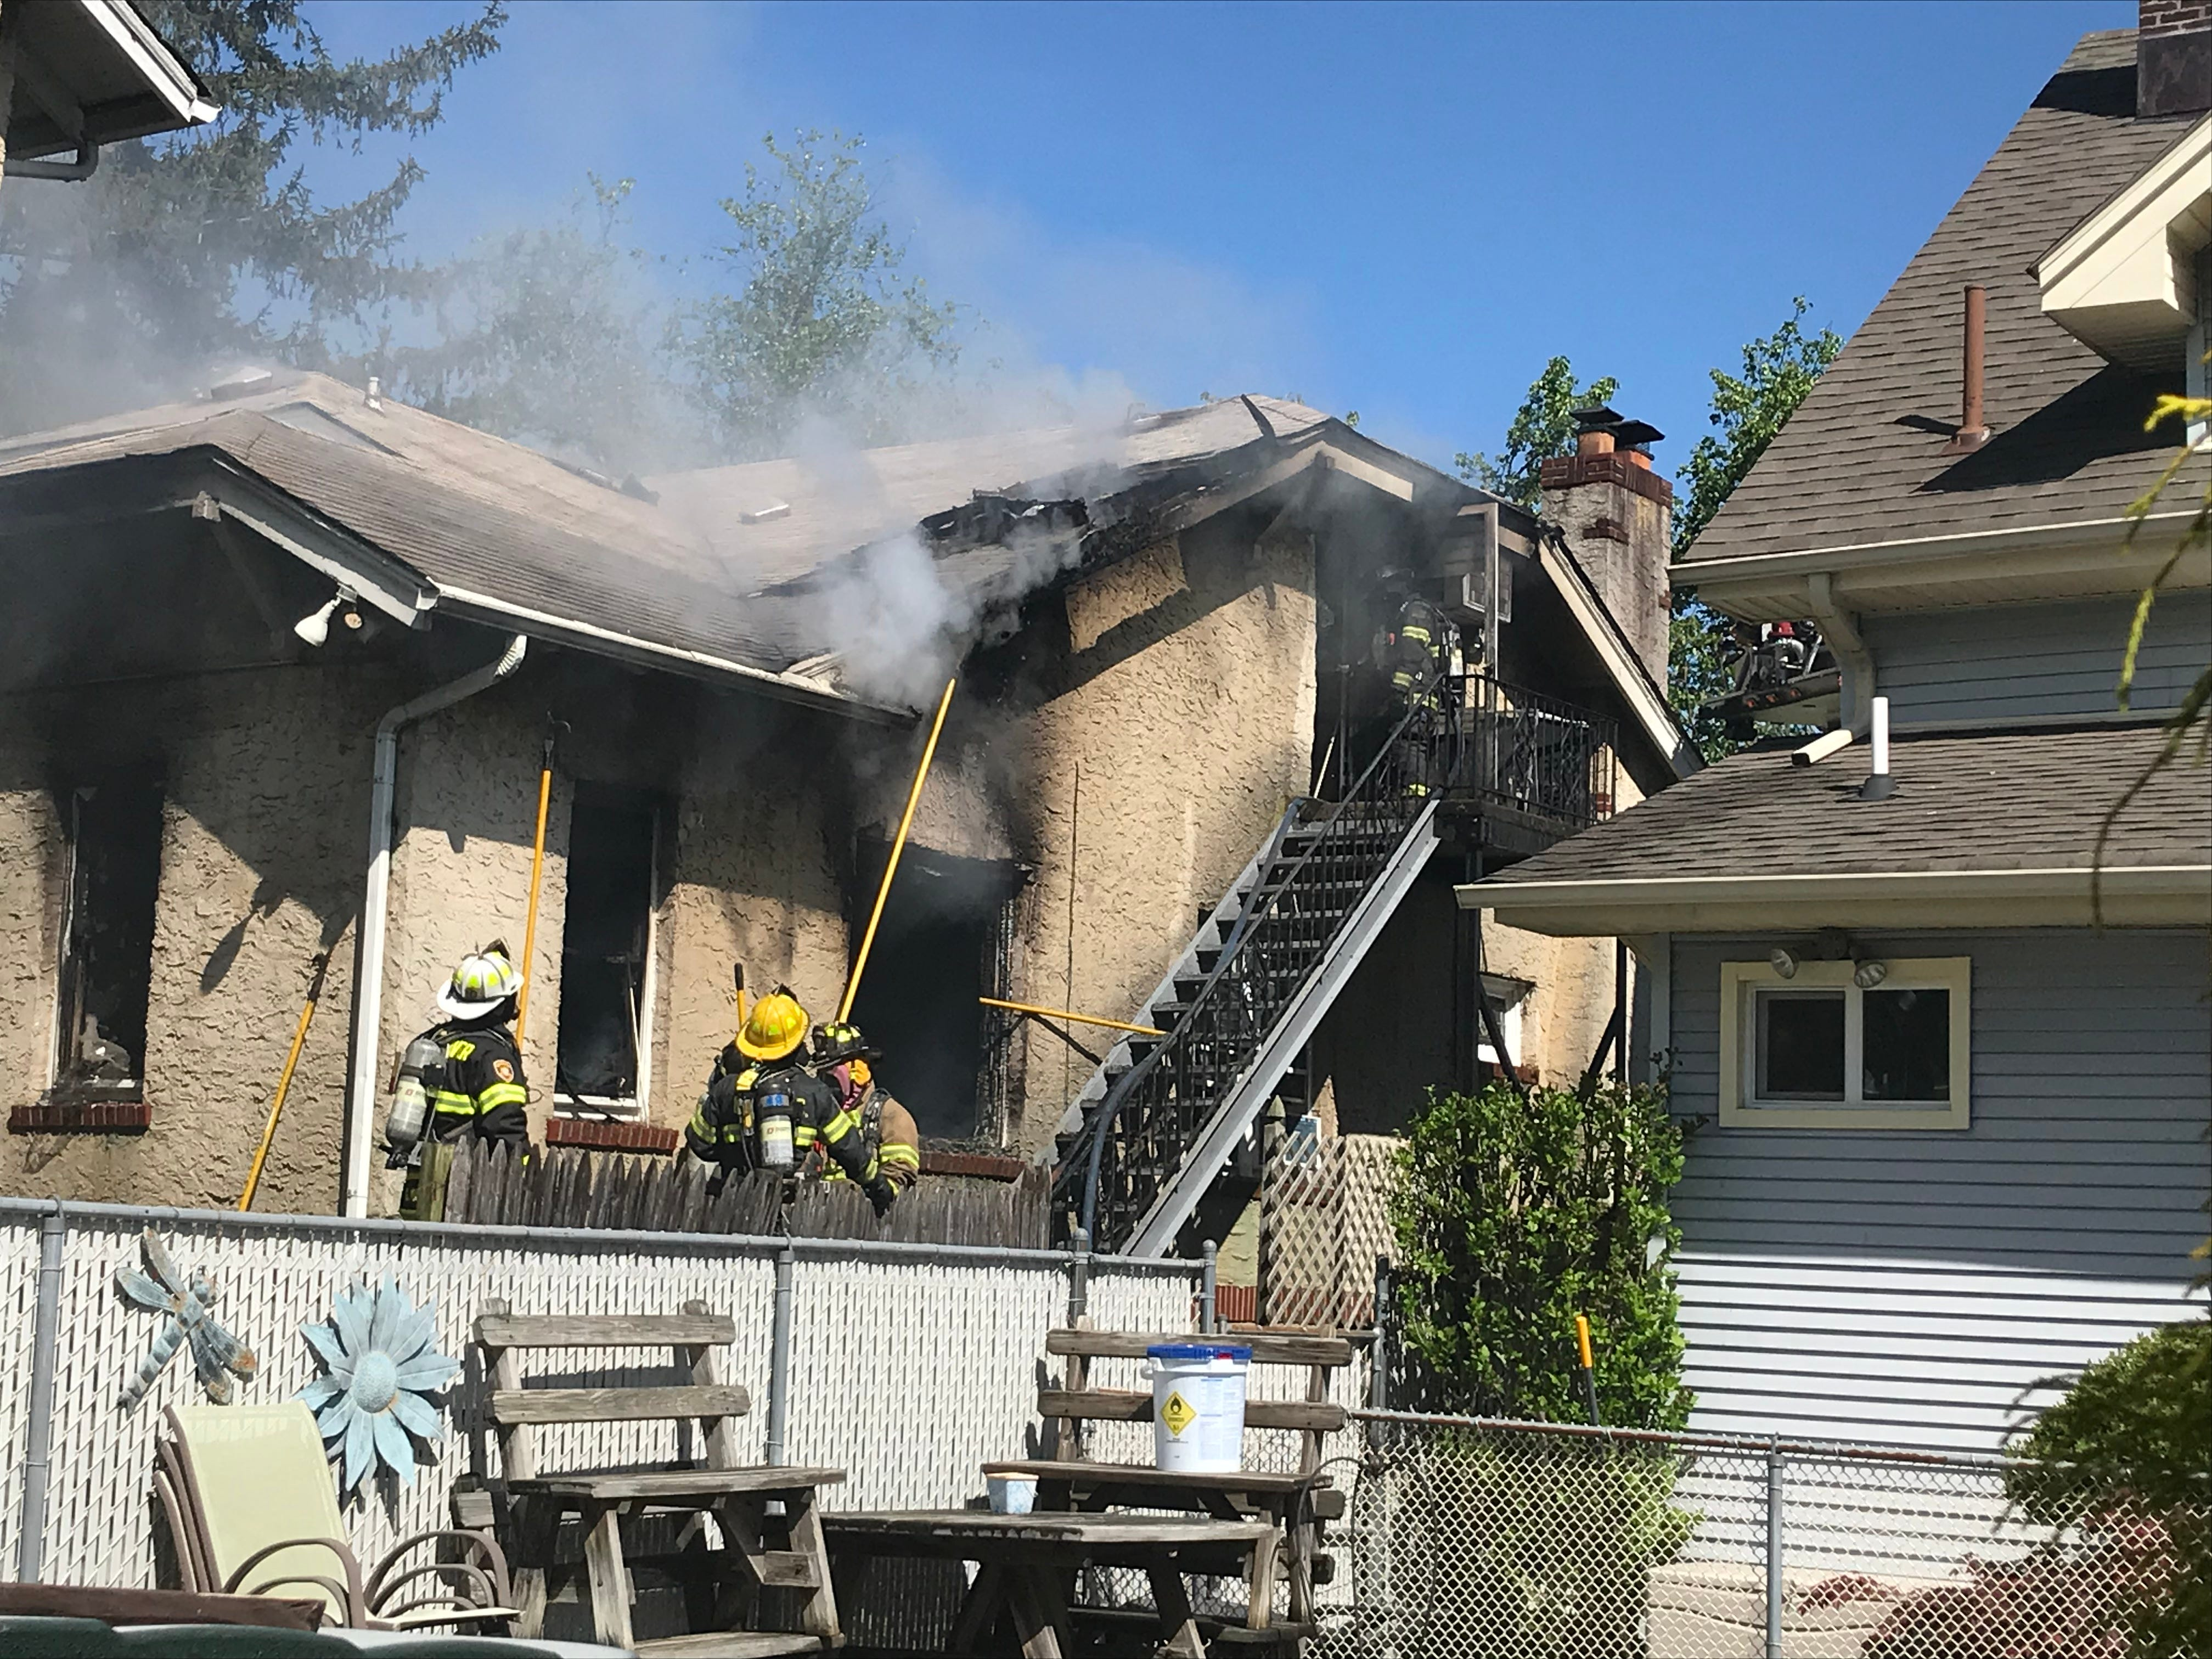 A Devoe Street home was damaged by fire Monday morning in South River.